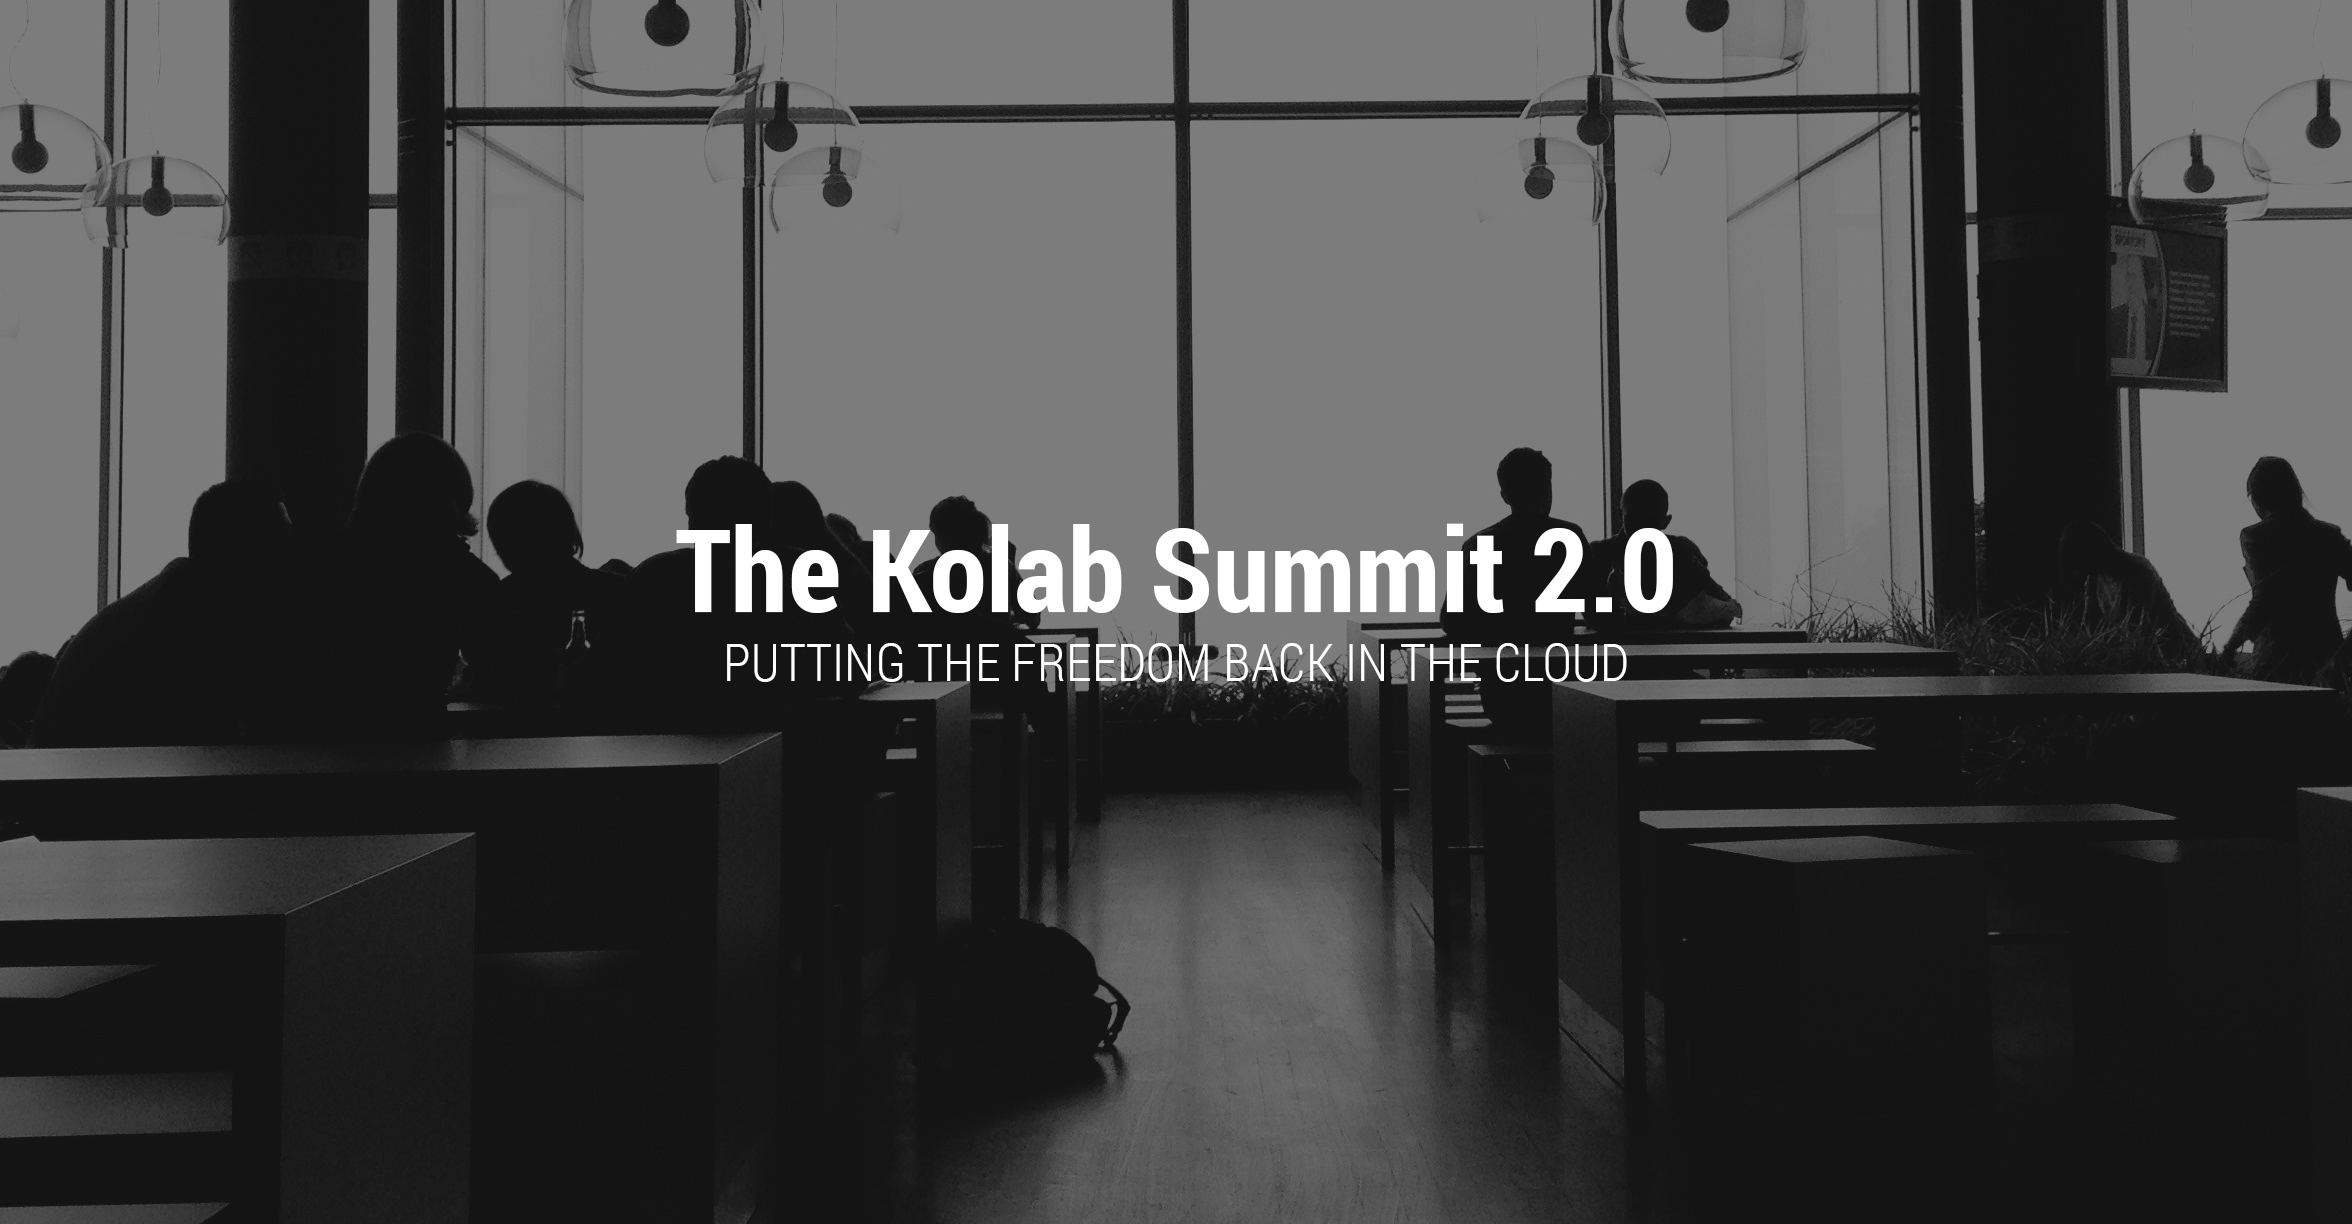 Kolab Summit 2.0: Putting the freedom back into the cloud.